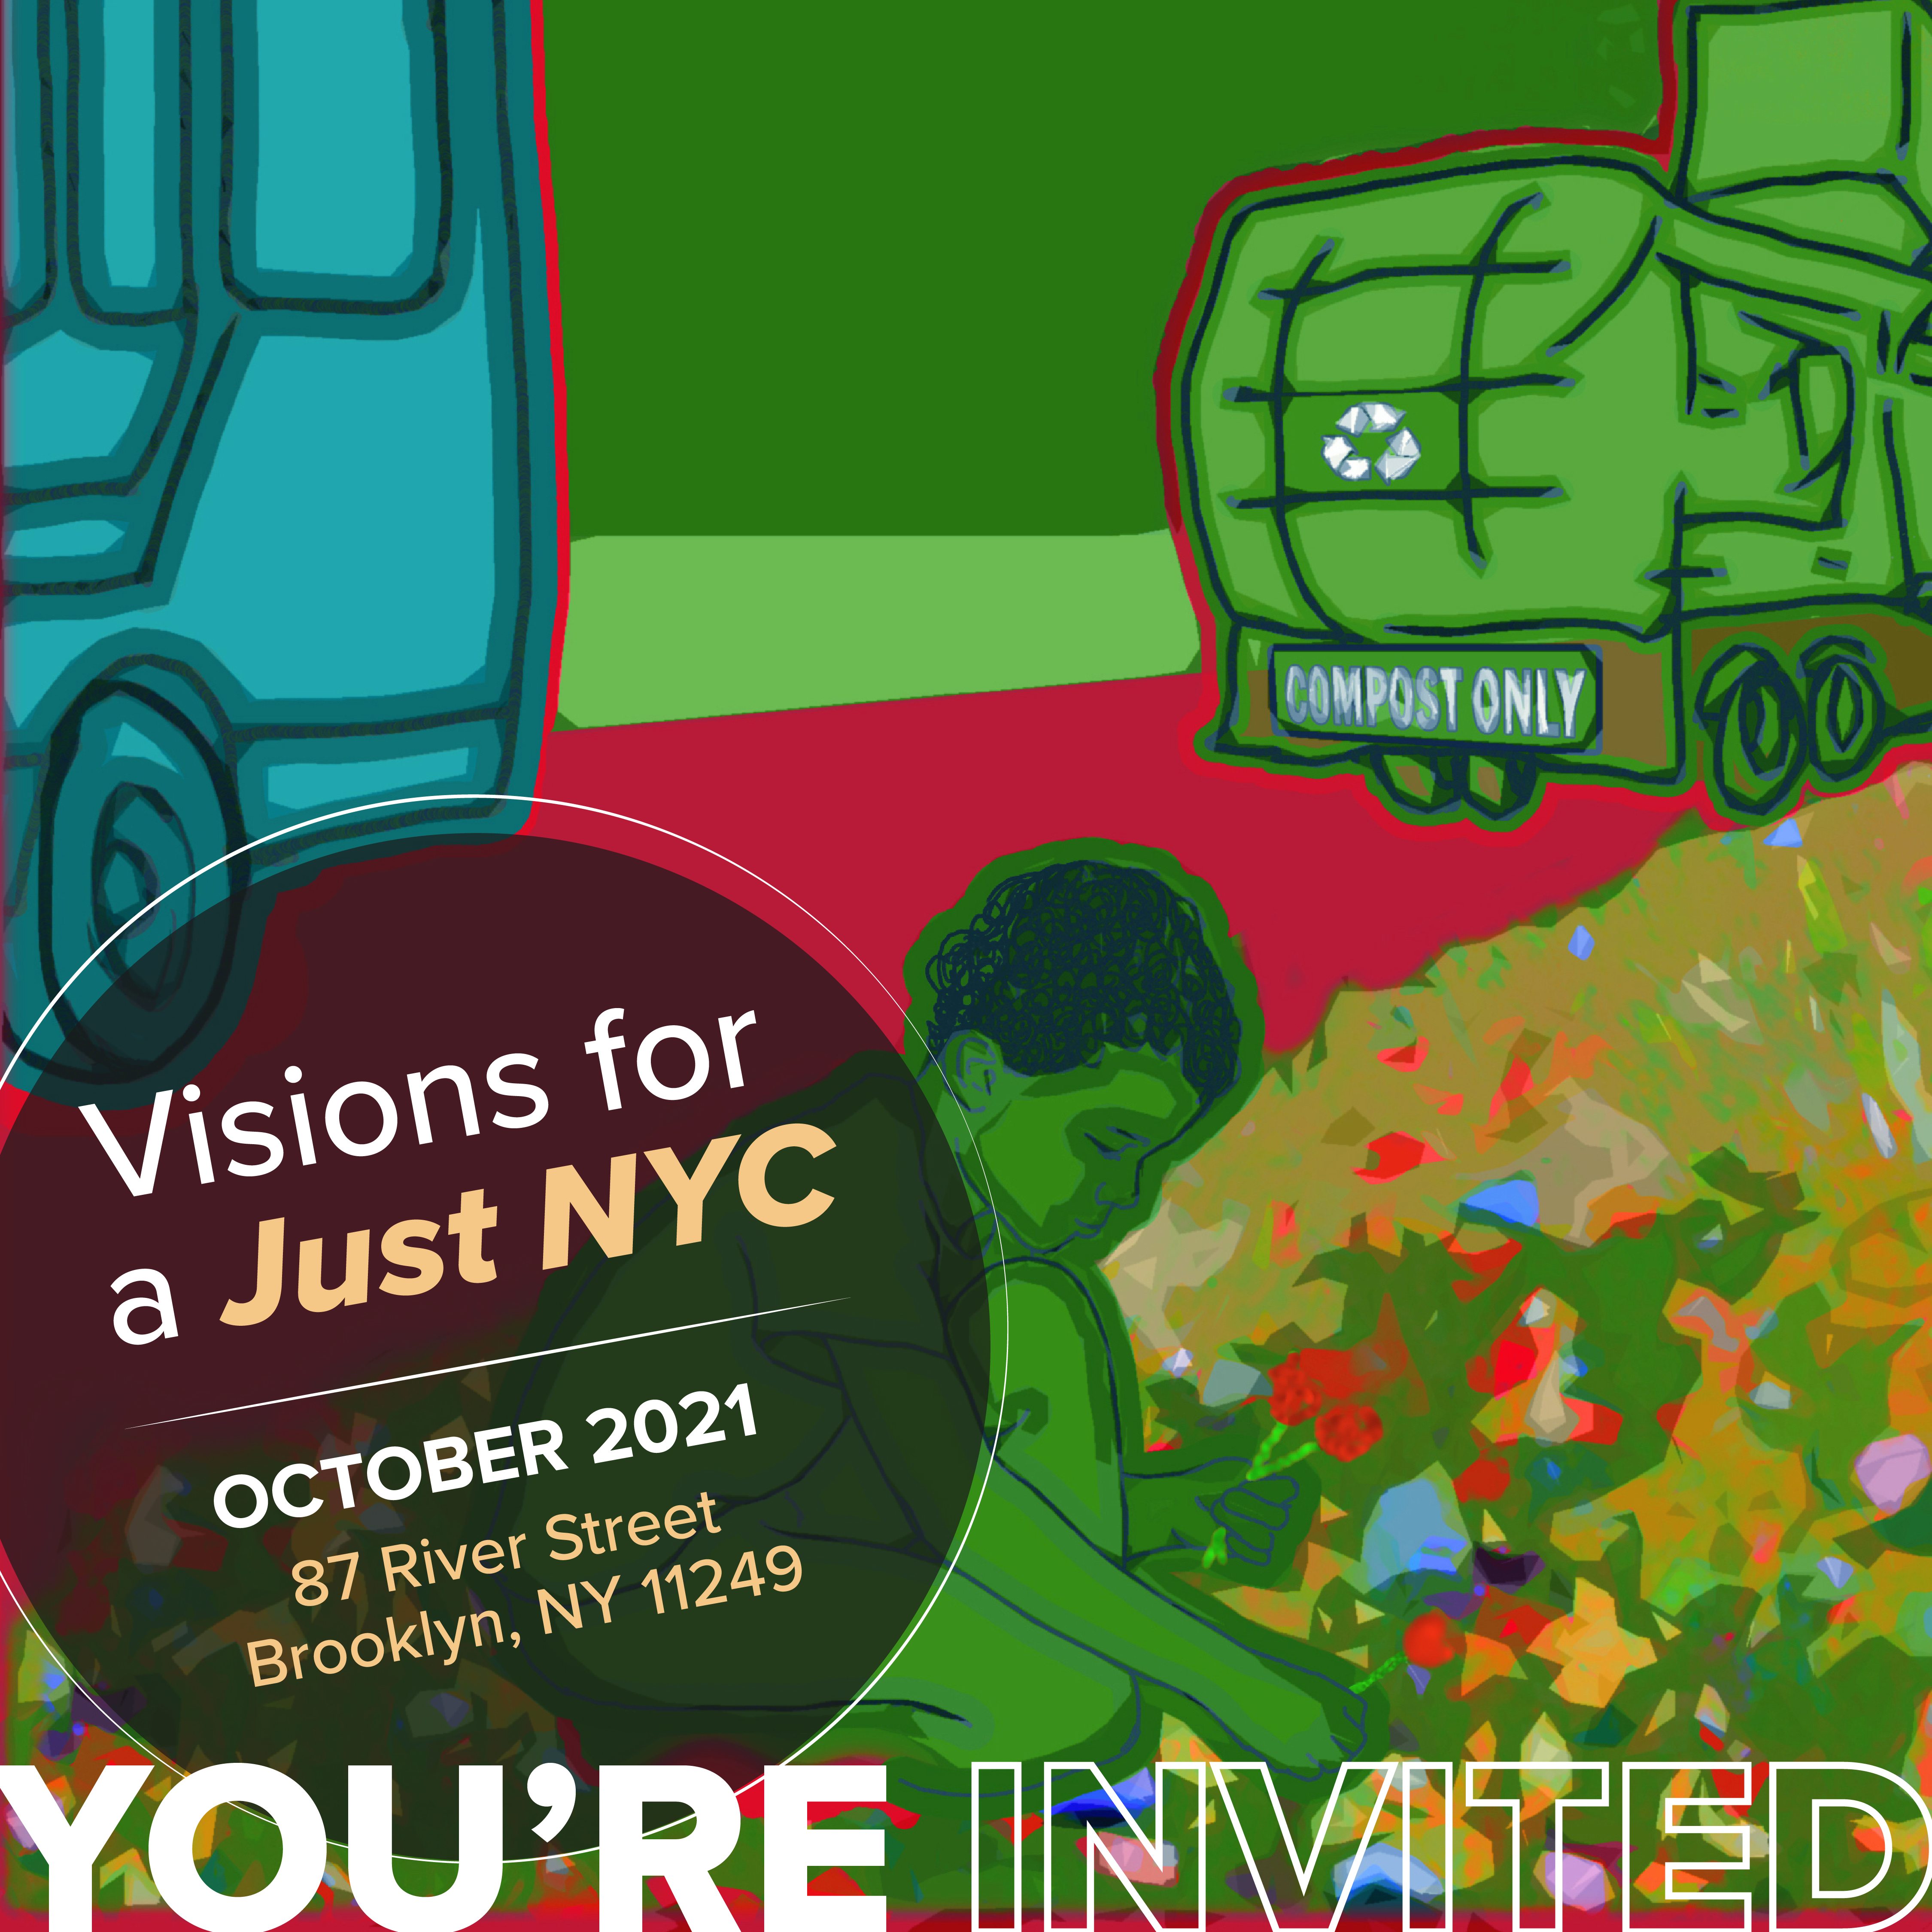 A mural panel in green depicting a person gardening with a compost truck in the background. Text reads: Visions for a Just NYC, October 2021, River Street Park, Williamsburg.